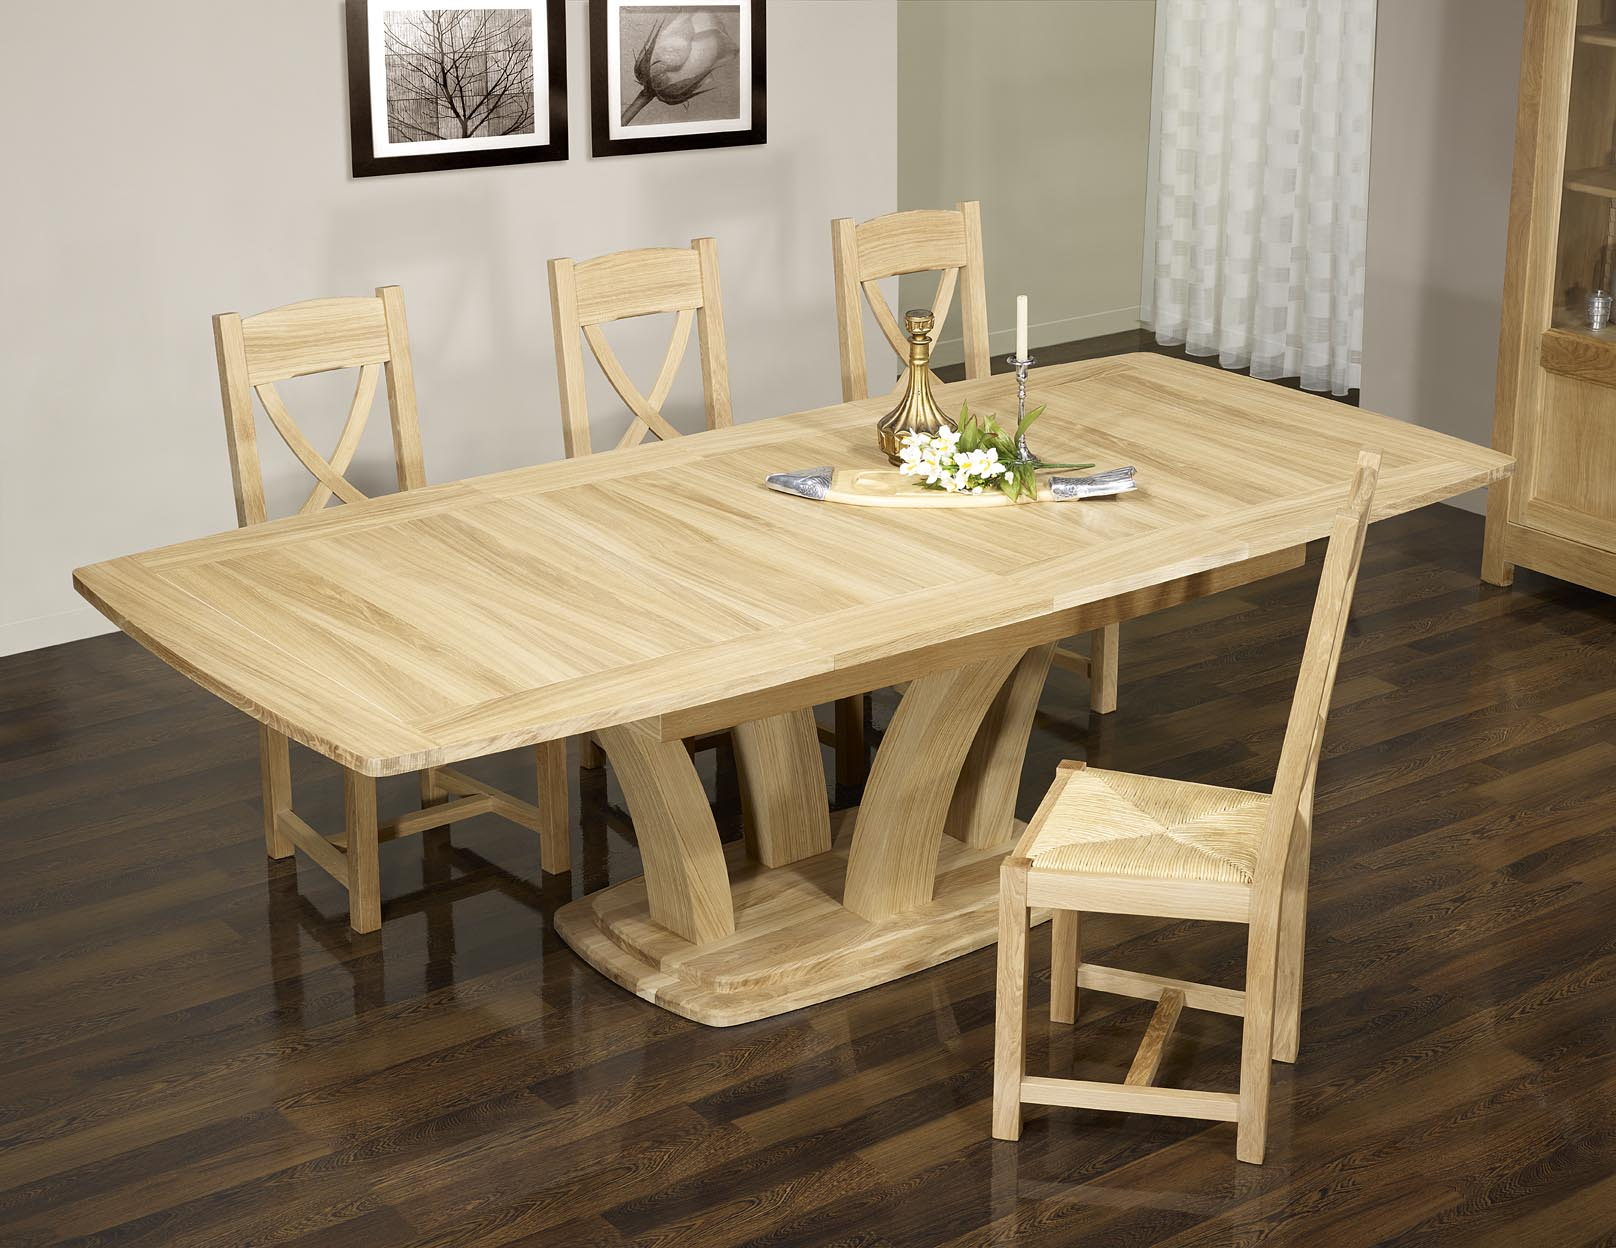 Table de repas contemporaine en ch ne massif finition - Table bois massif contemporaine ...